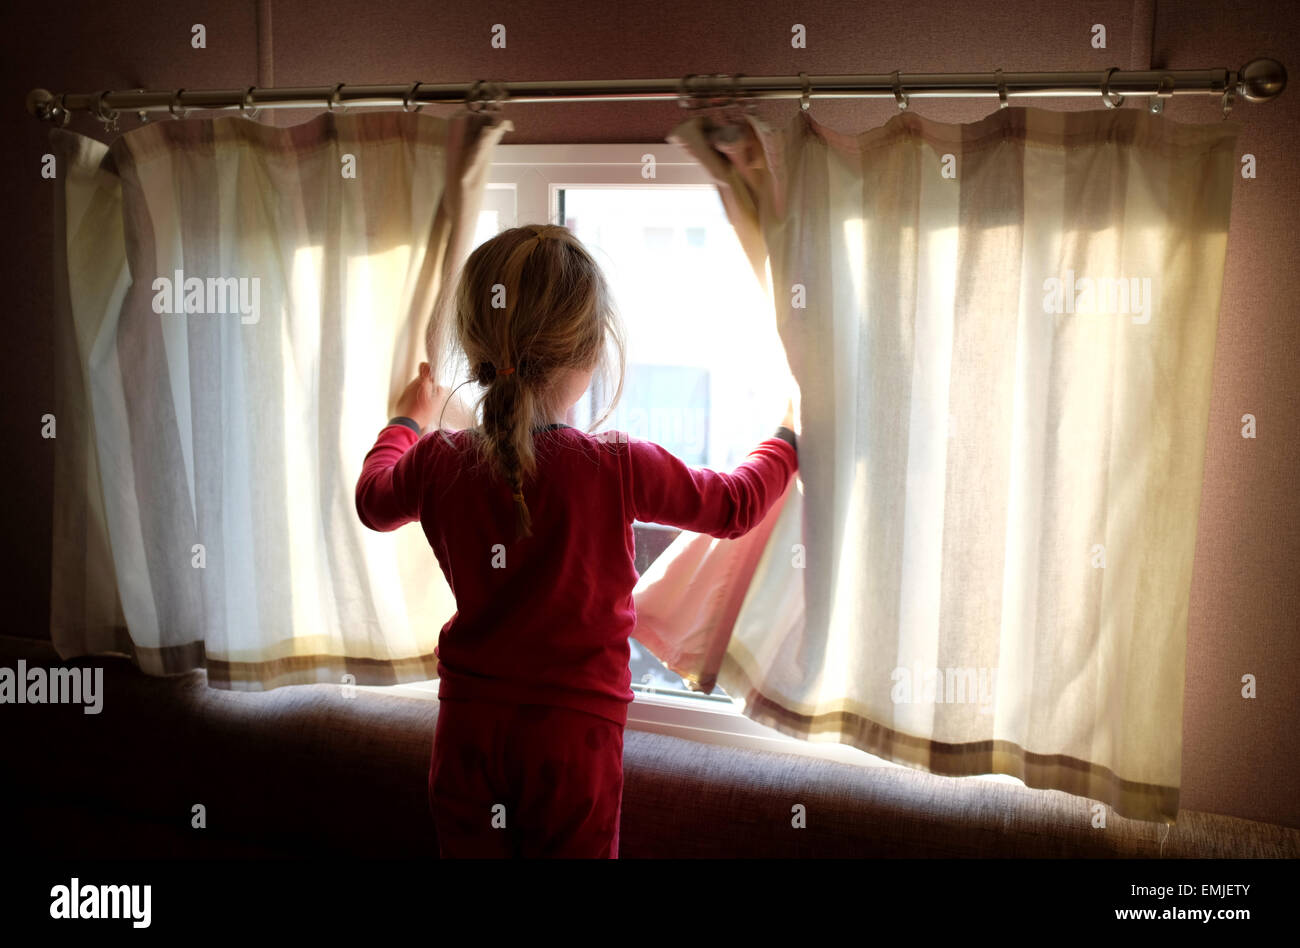 A sleepy young girl in pyjamas opens the curtains to look out of the window at the start of a new day - Stock Image